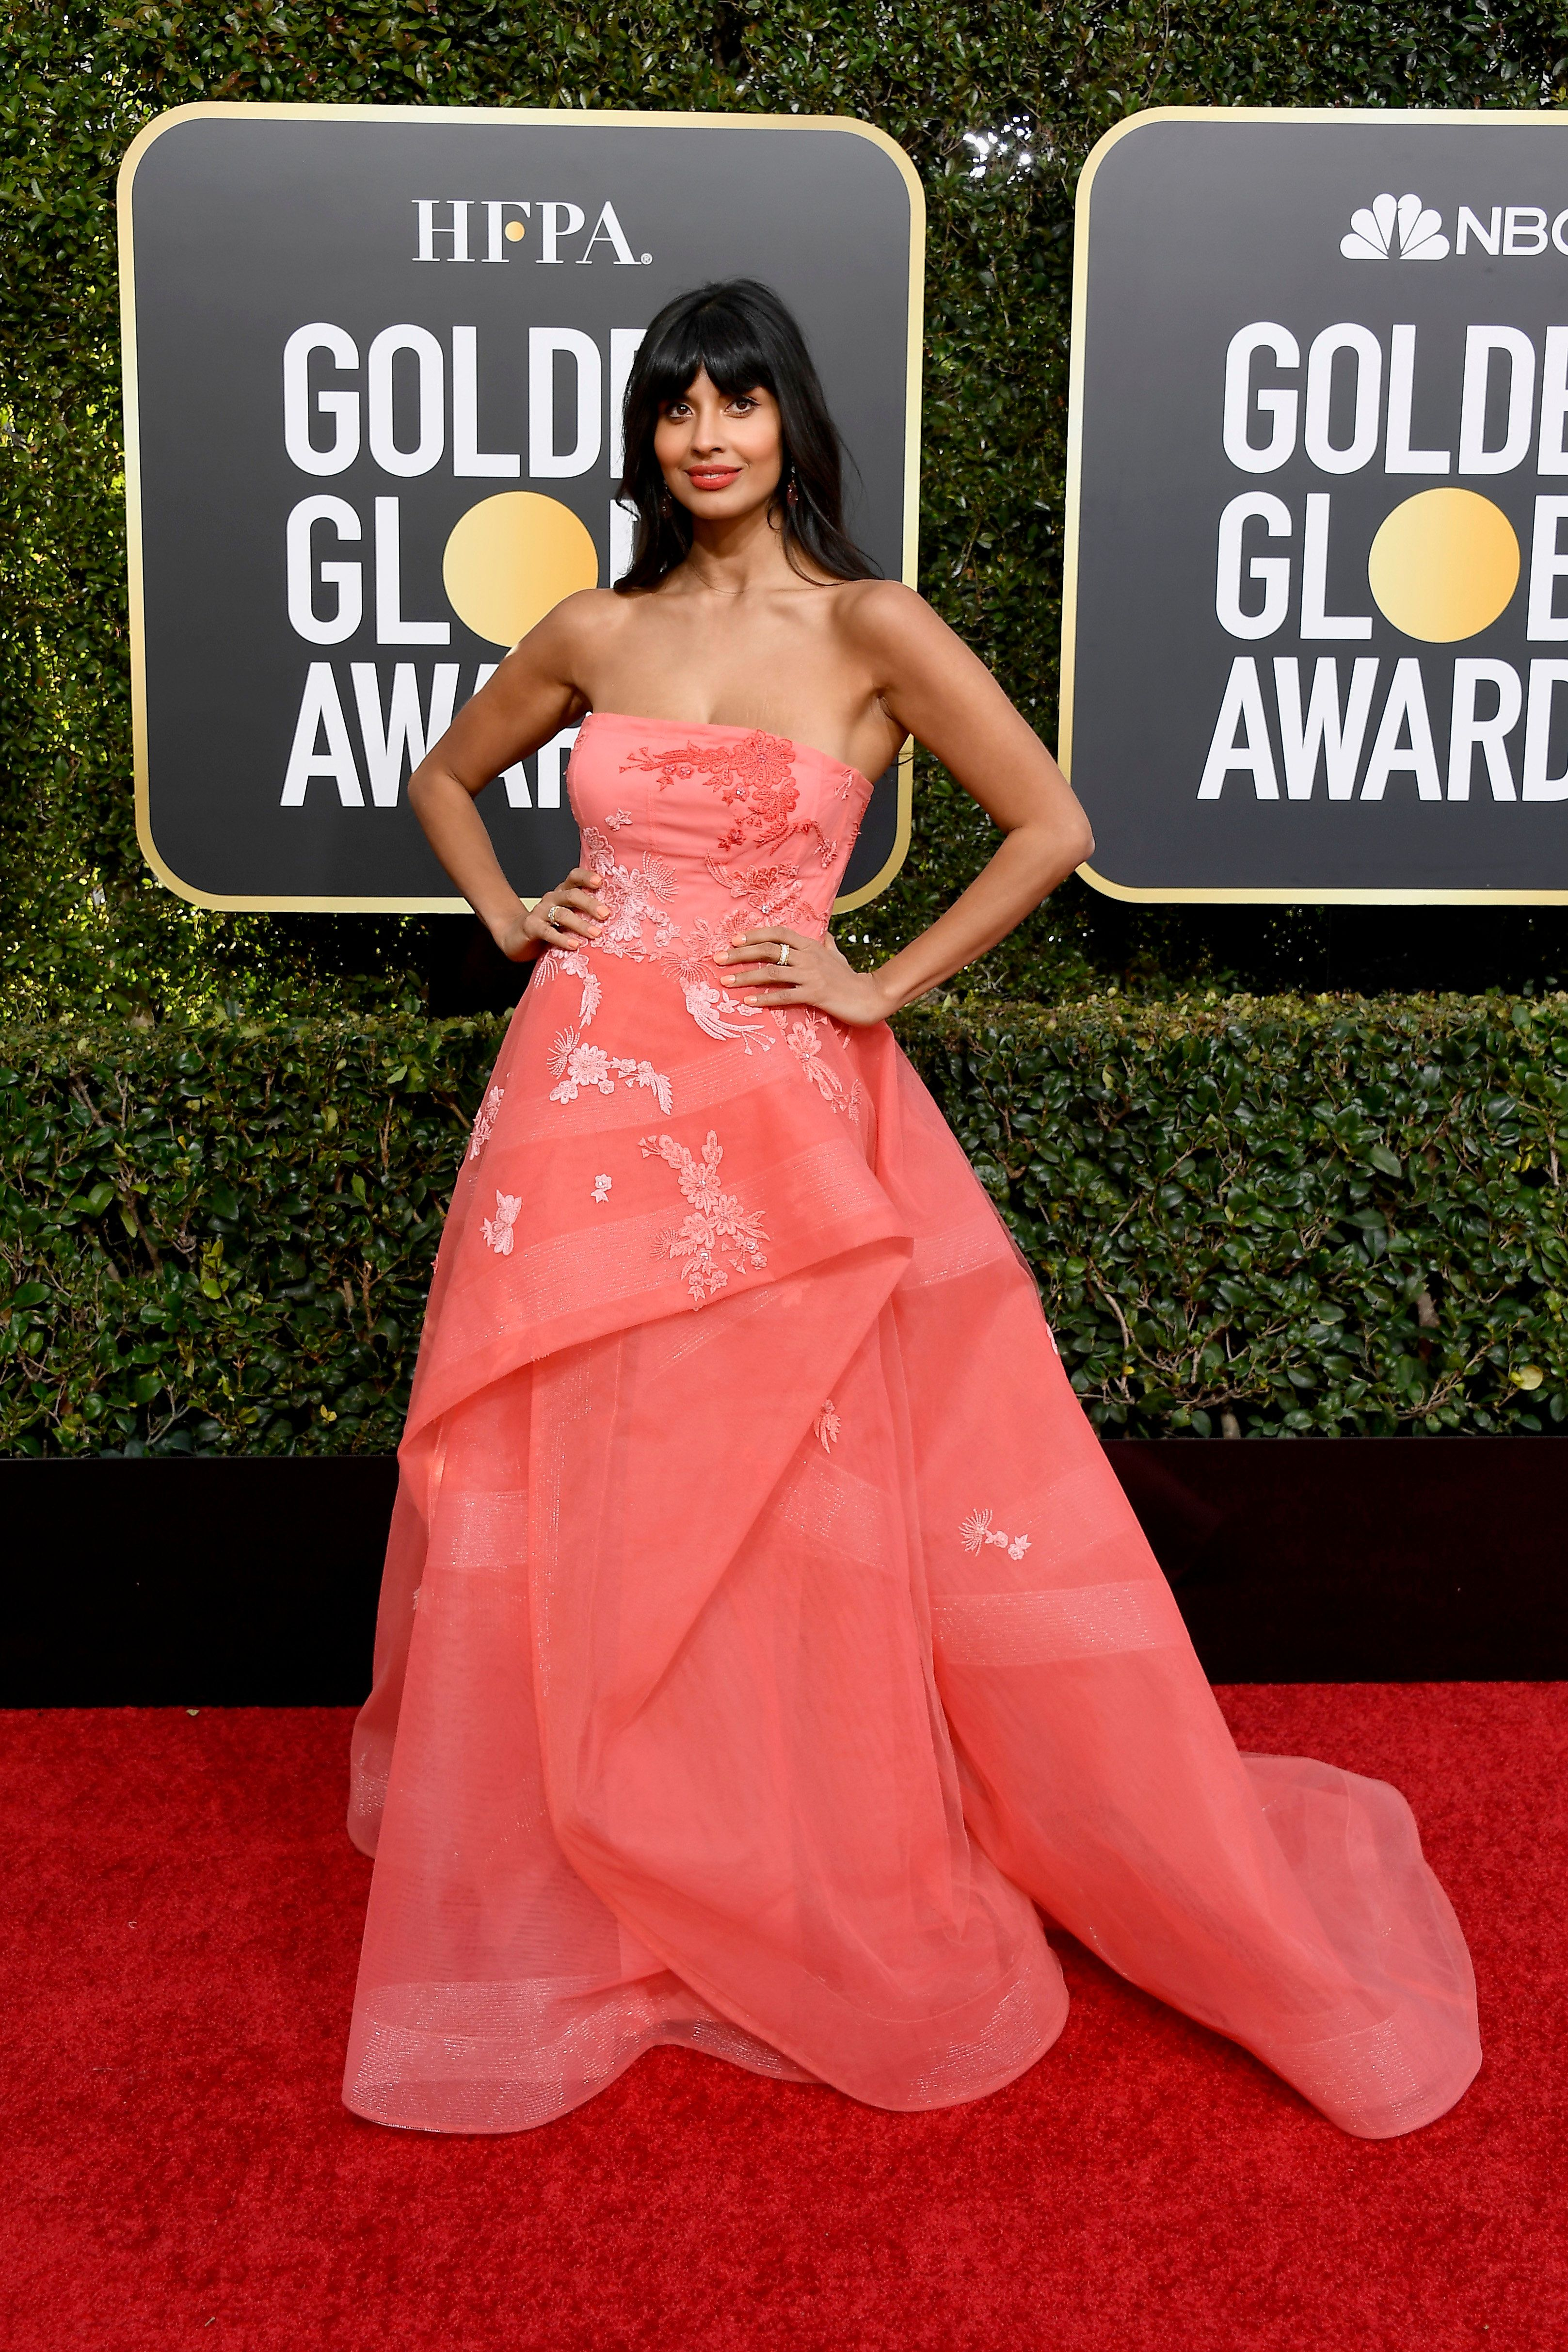 BEVERLY HILLS, CA - JANUARY 06:  76th ANNUAL GOLDEN GLOBE AWARDS -- Pictured: Jameela Jamil arrives to the 76th Annual Golden Globe Awards held at the Beverly Hilton Hotel on January 6, 2019. --  (Photo by Kevork Djansezian/NBC/NBCU Photo Bank)